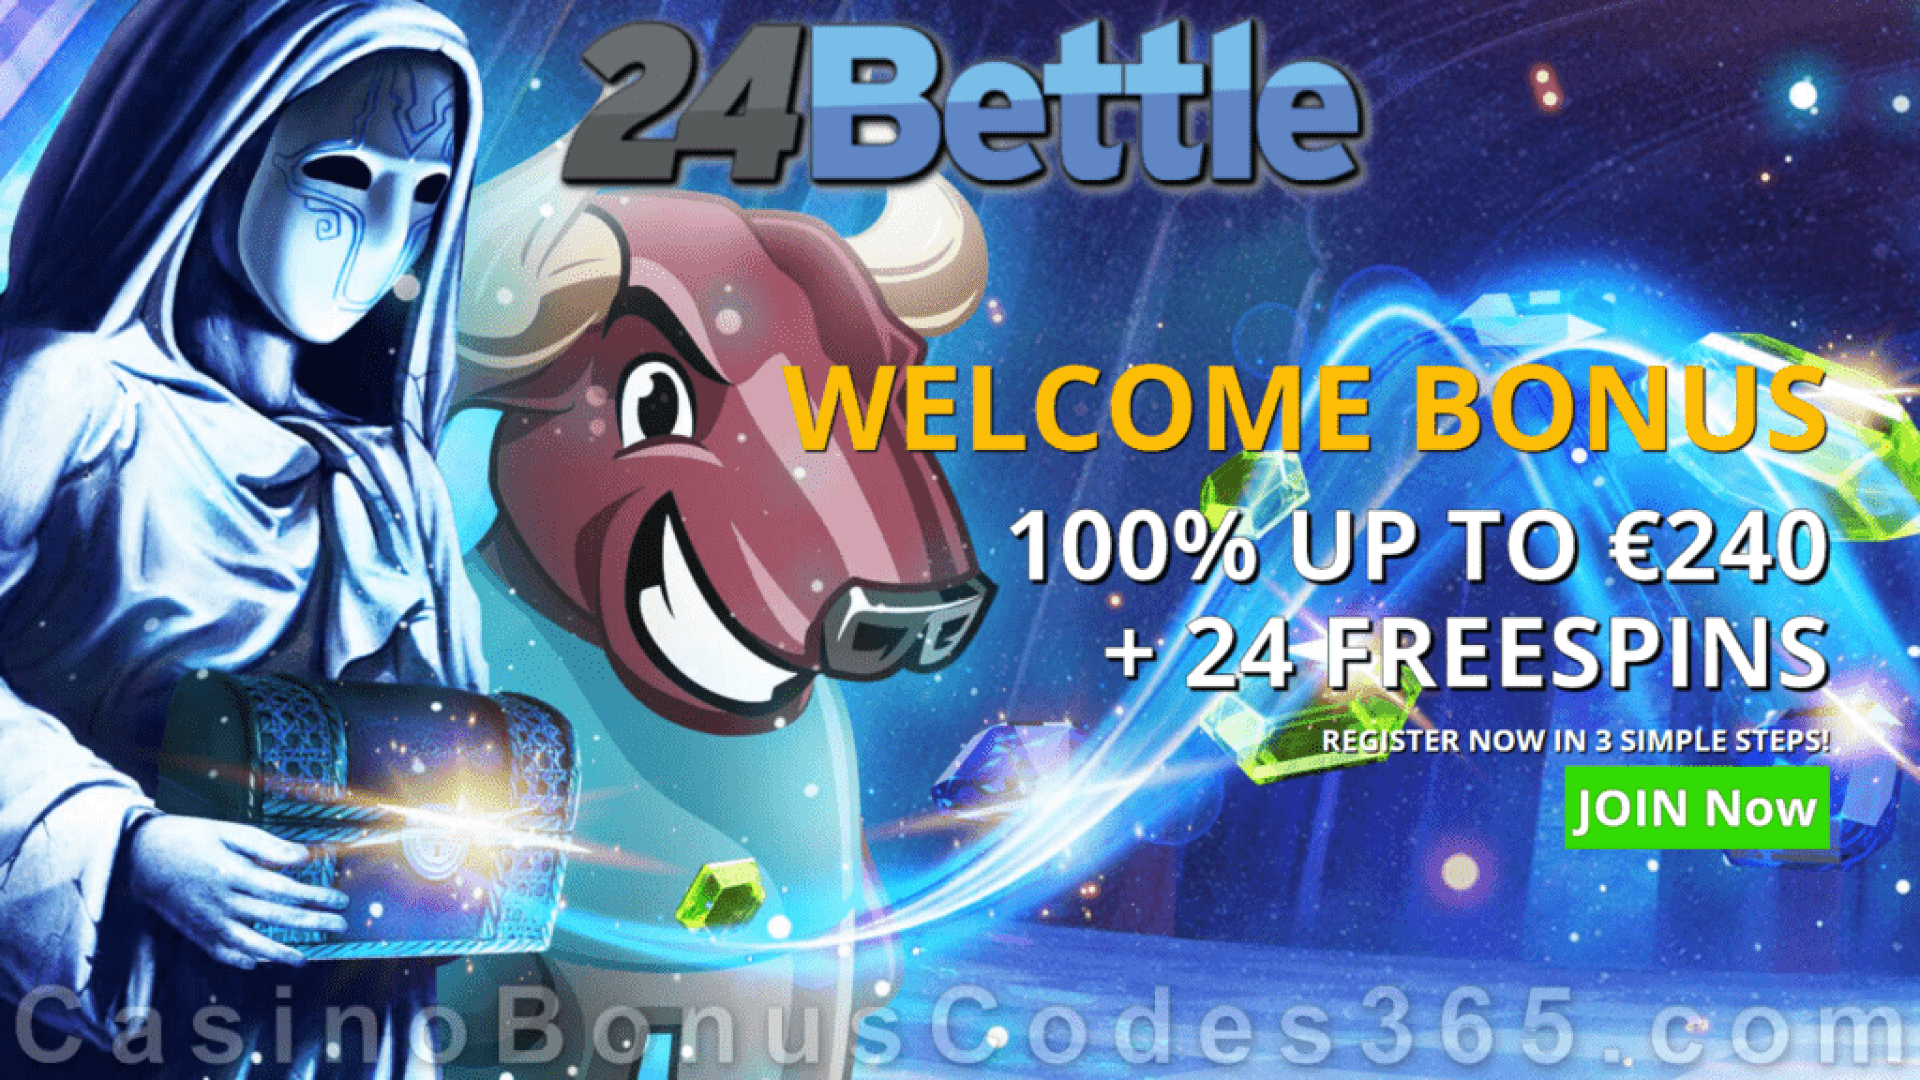 24Bettle 100% Match plus 24 FREE Spins Welcome Bonus